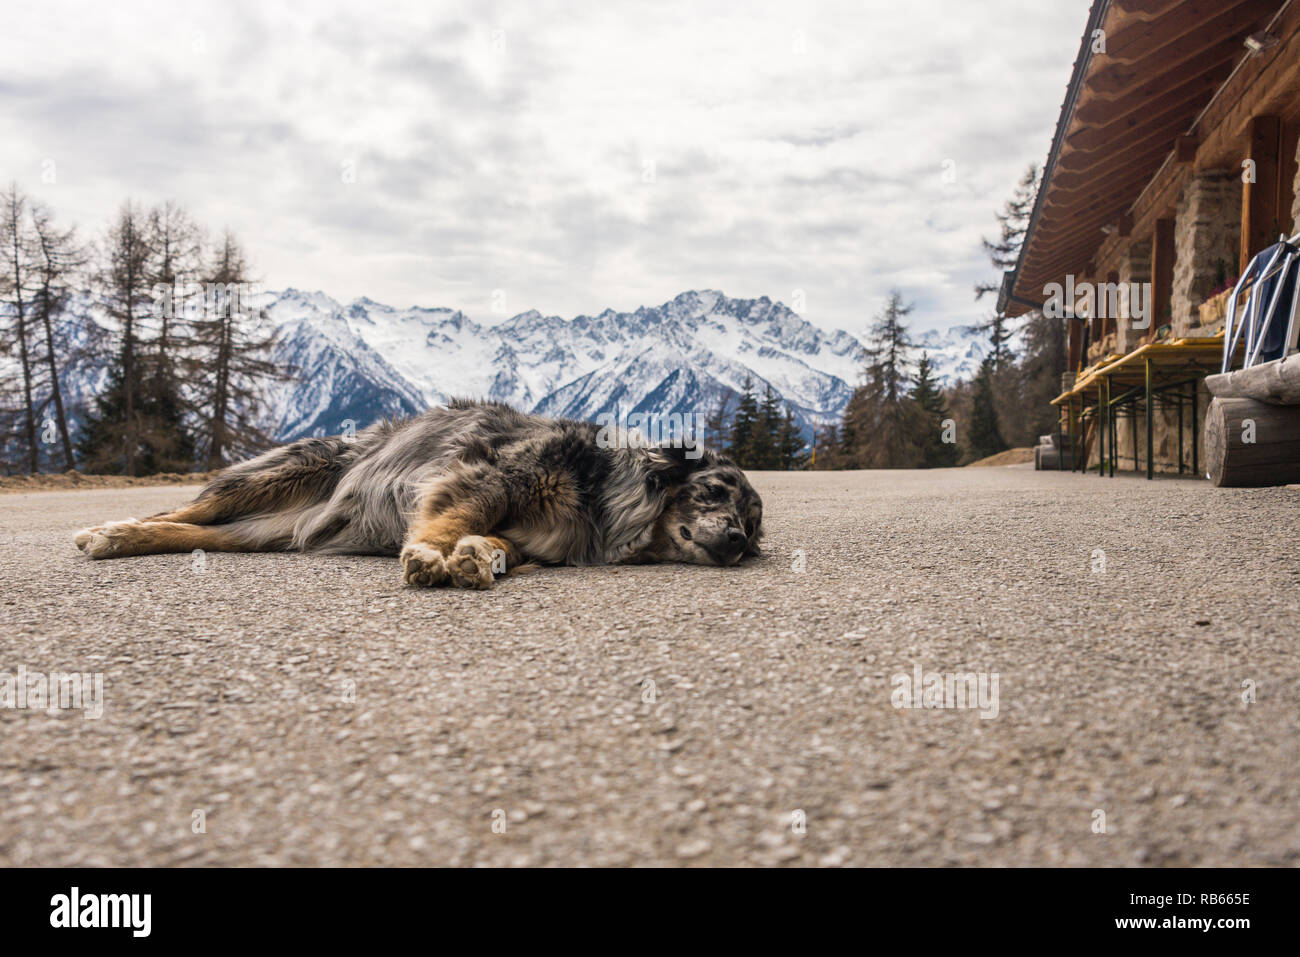 Dog guarding the Malga Stabli - ristorante bar in Ortisè, a small and picturesque village in Trento, Snow-capped mountains - Italian Alps,  Italy - Stock Image